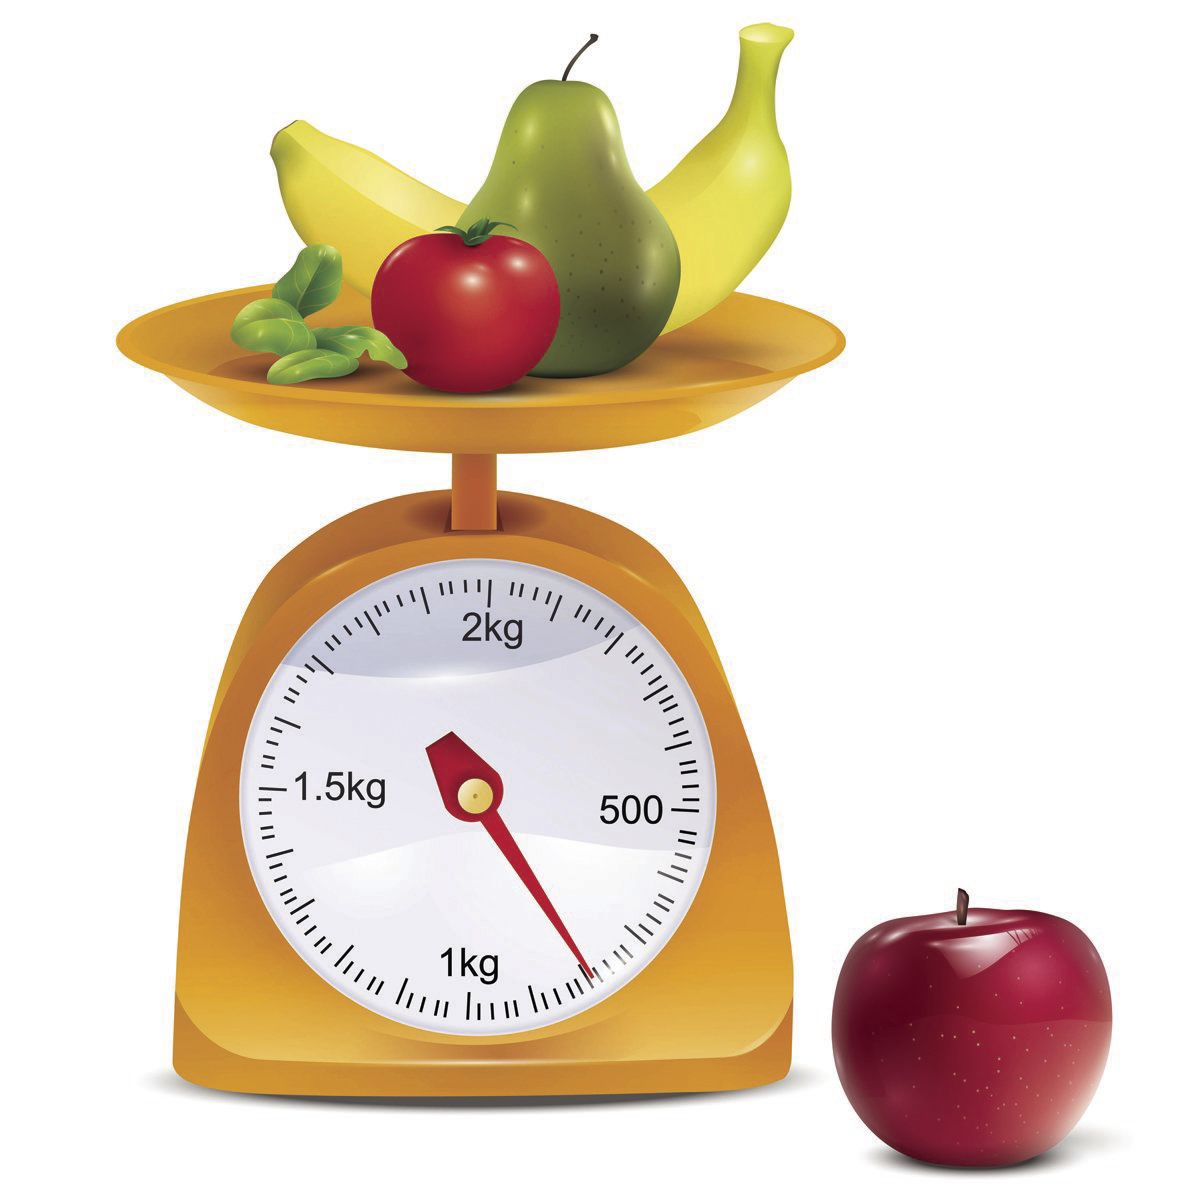 Making healthy eating, physical activity a lifelong habit